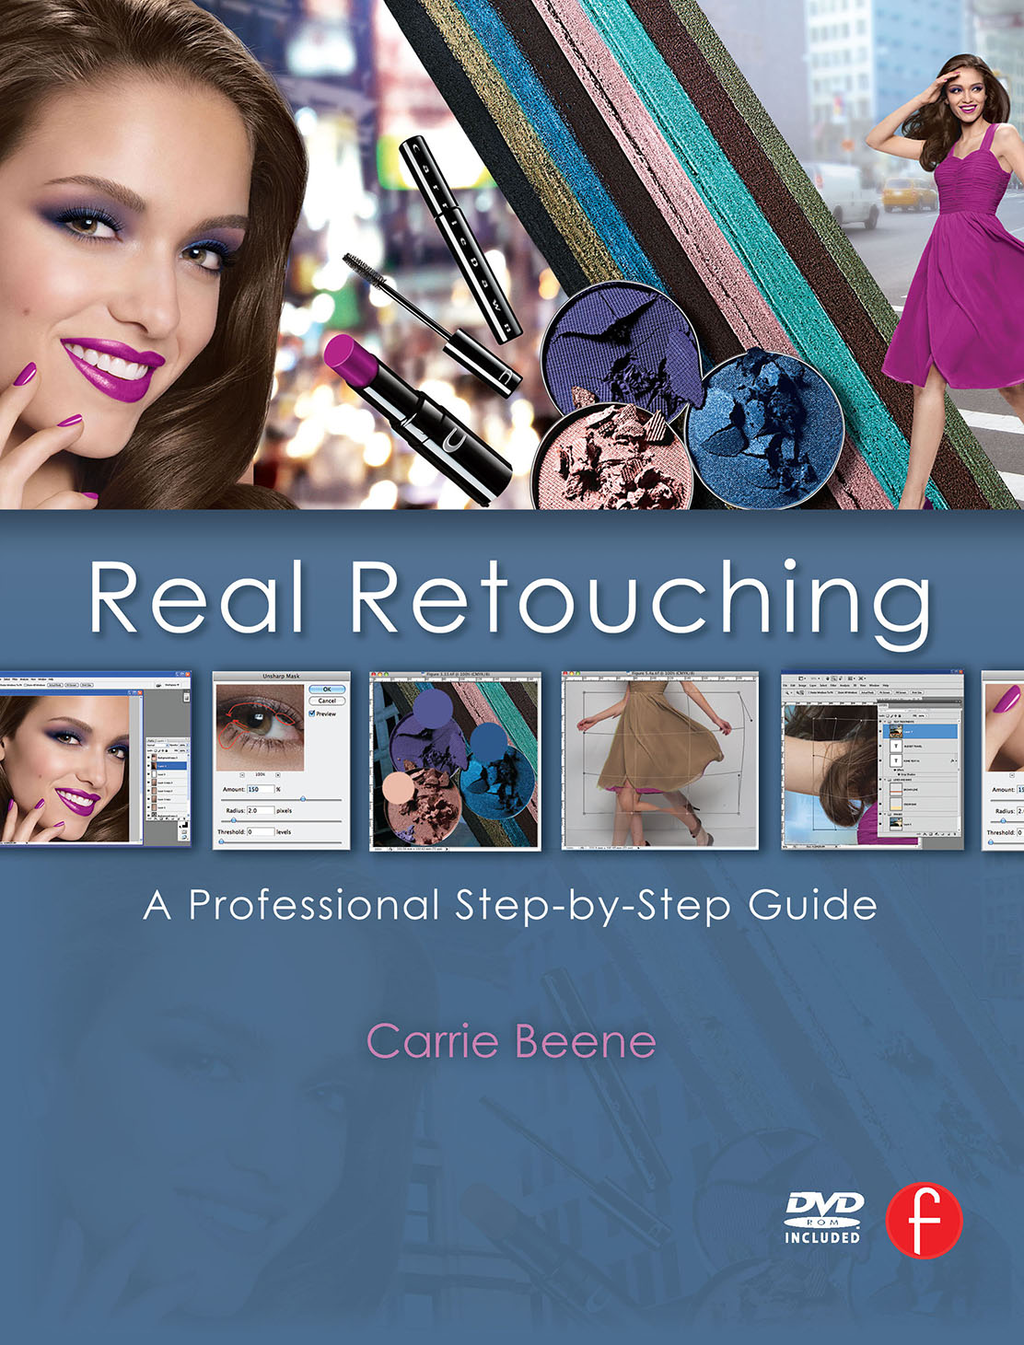 Real Retouching The Professional Step-by-Step Guide